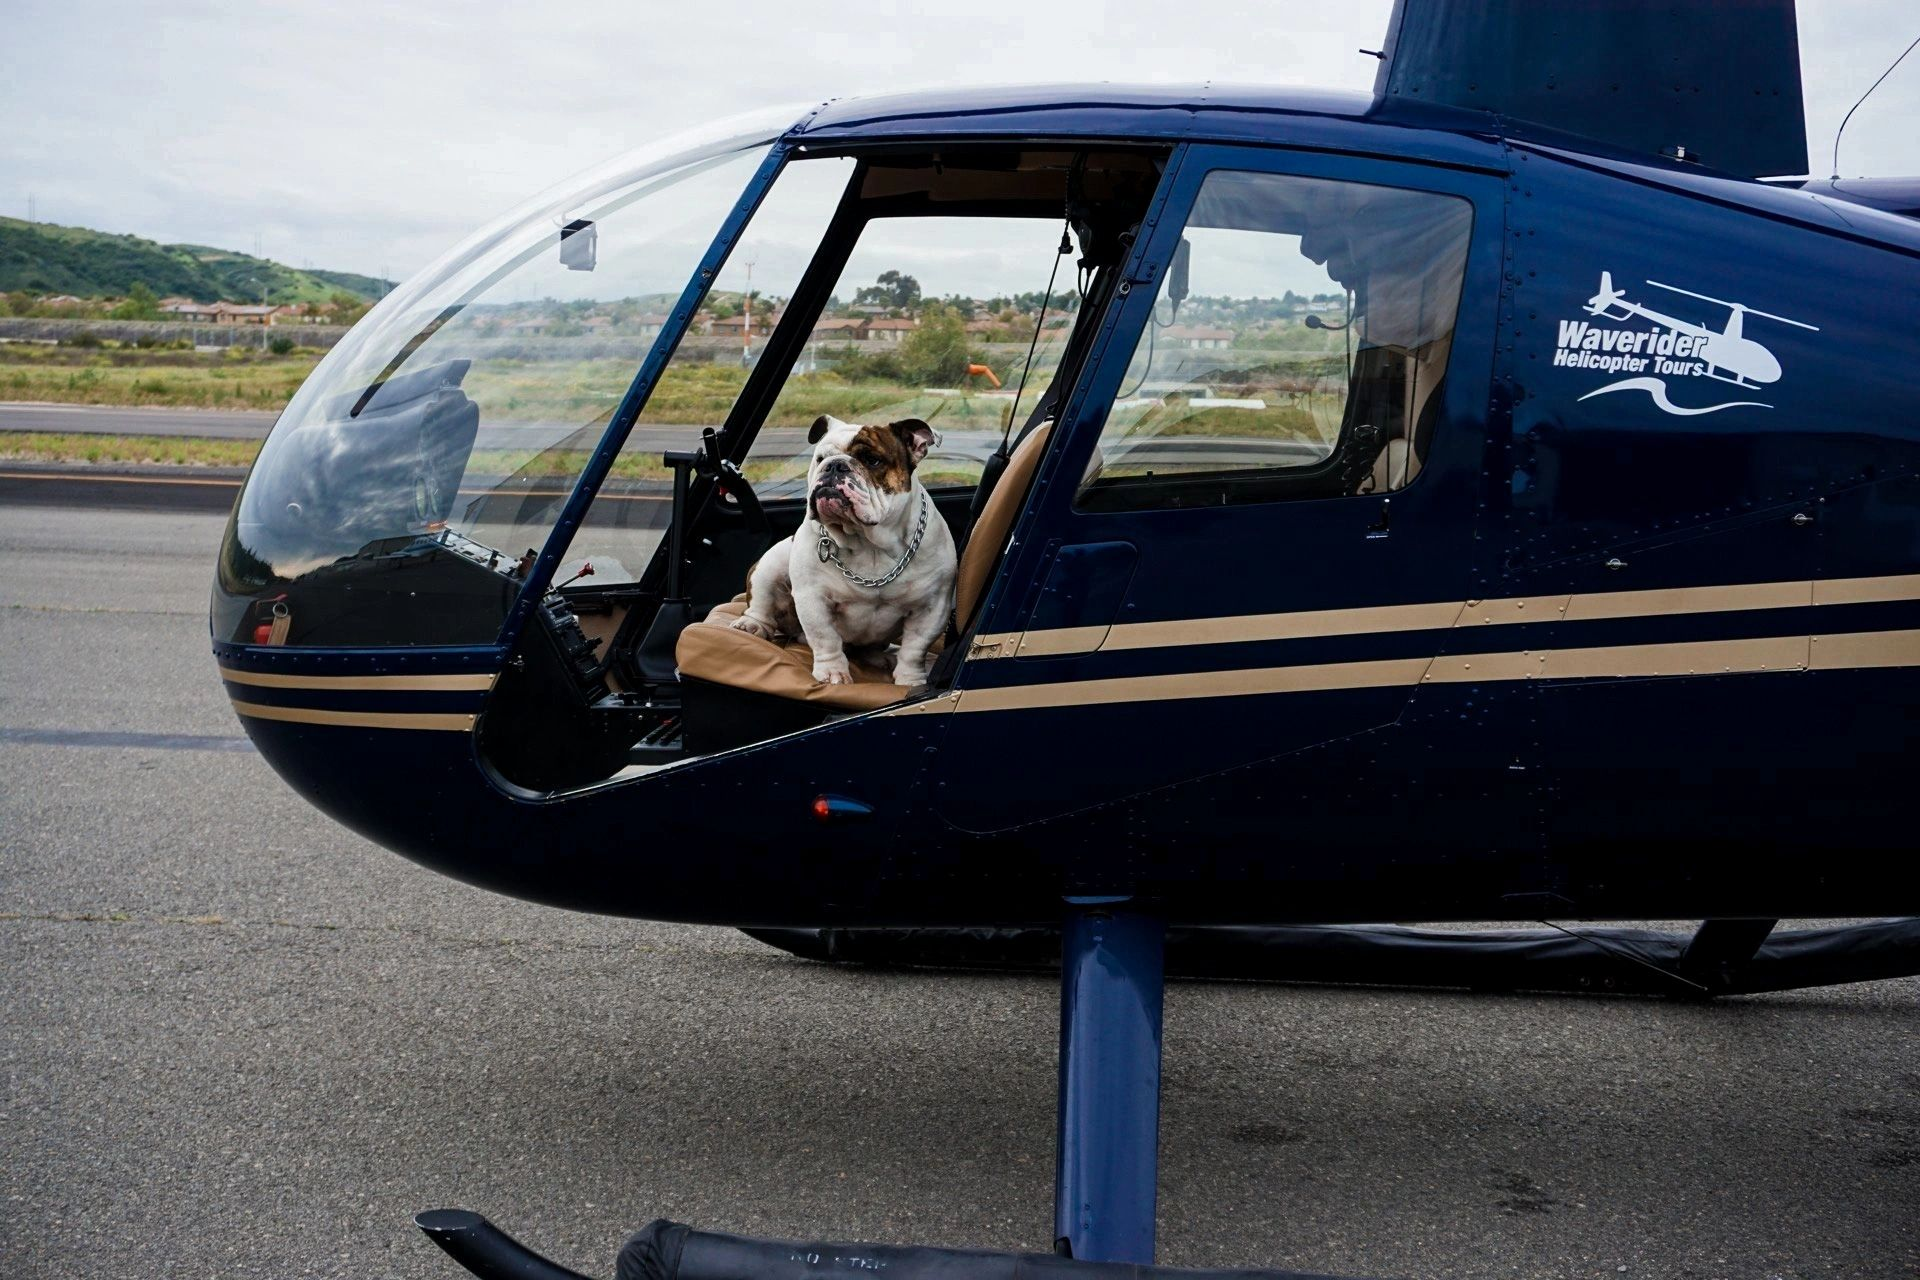 Temecula Wine Country and Beyond Helicopter Tour